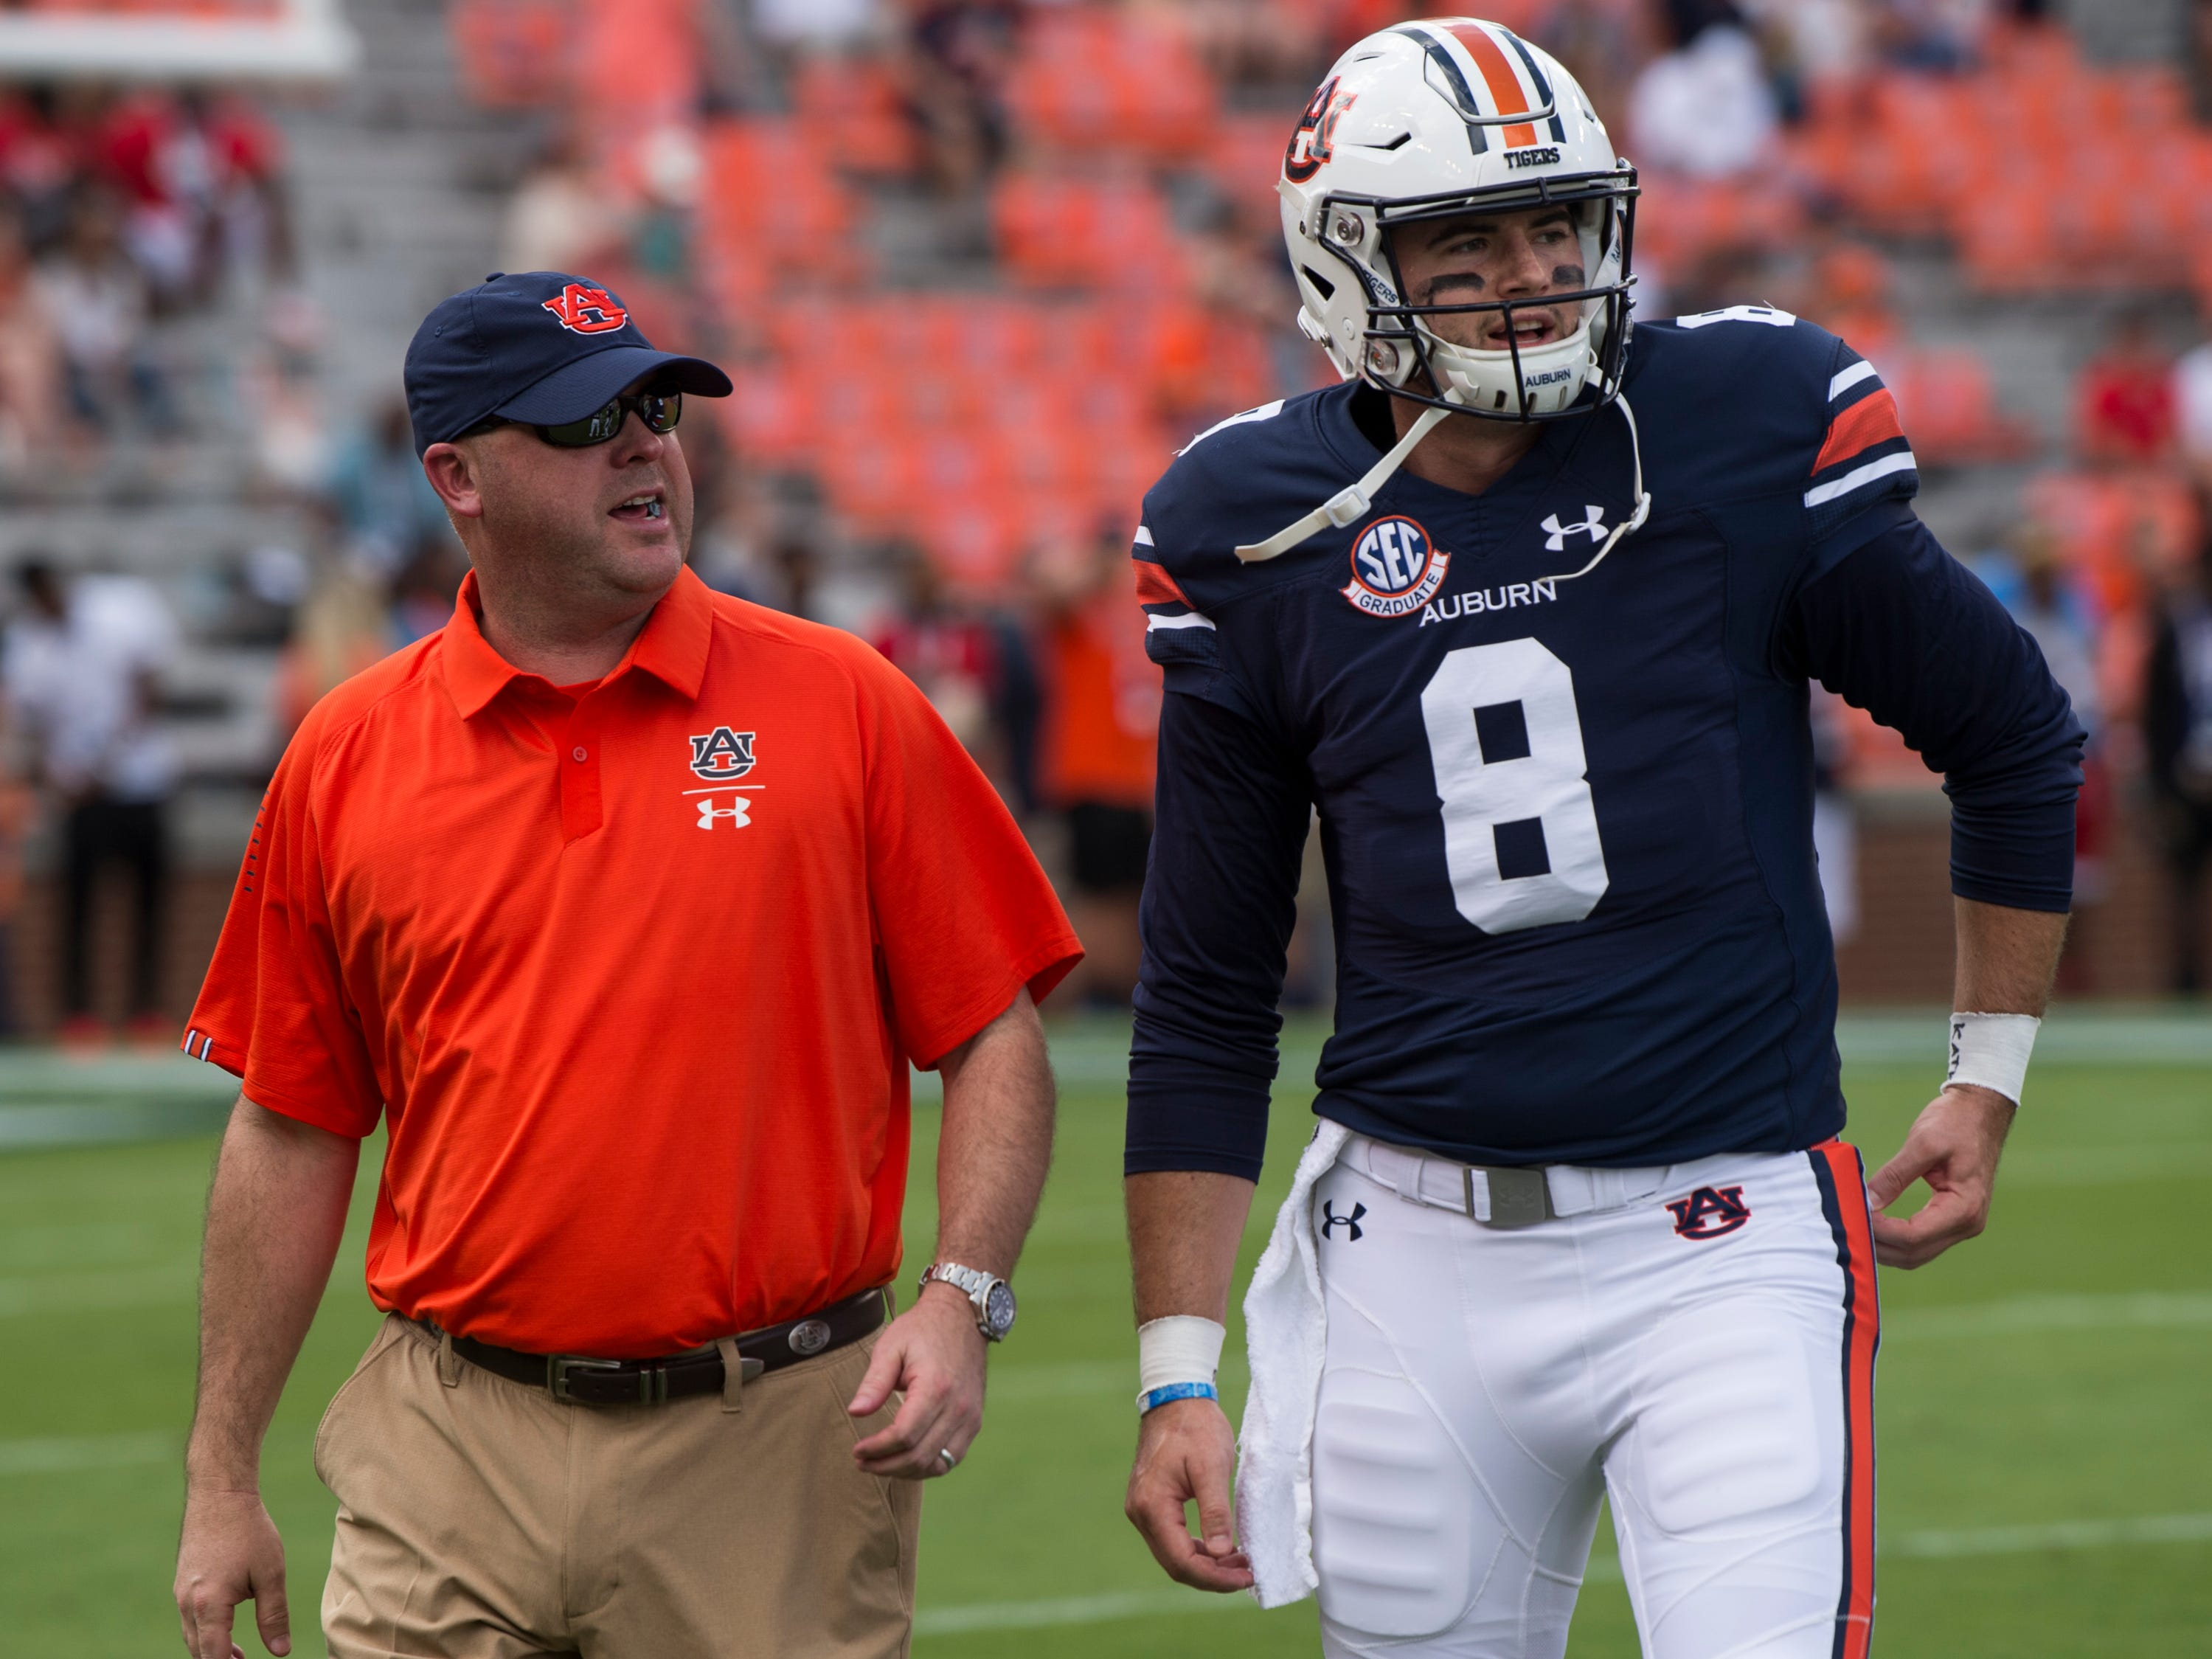 Auburn offensive coordinator Chip Lindsey talks with quarterback Jarrett Stidham (8) during warm ups before taking on Southern Miss at Jordan-Hare Stadium in Auburn, Ala., on Saturday, Sept. 29, 2018.